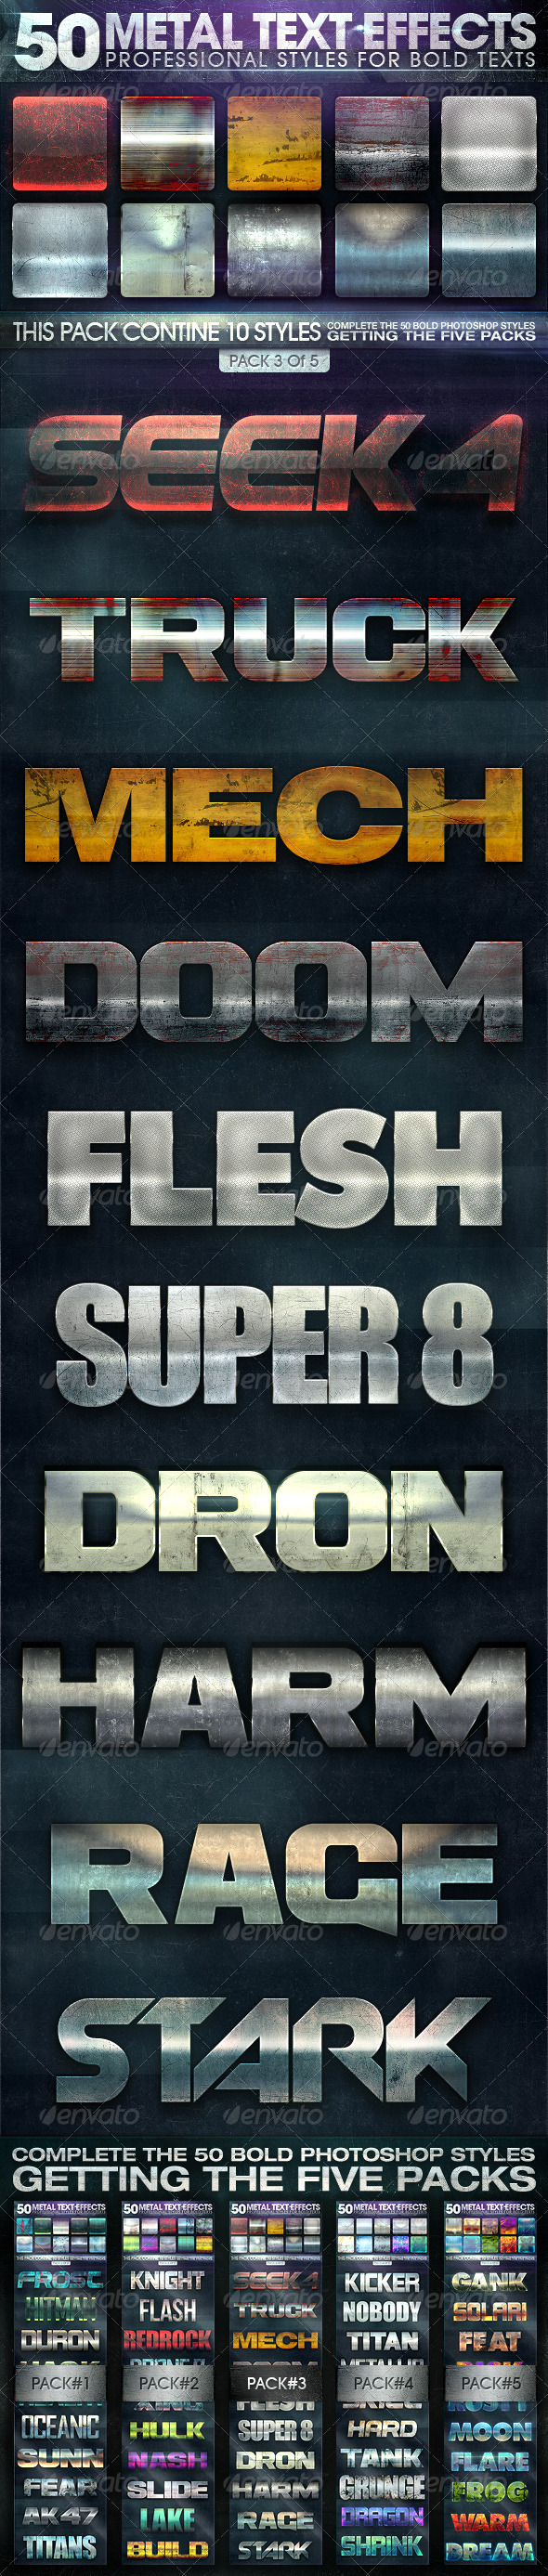 GraphicRiver 50 Metal Text Effects 3 of 5 8377488